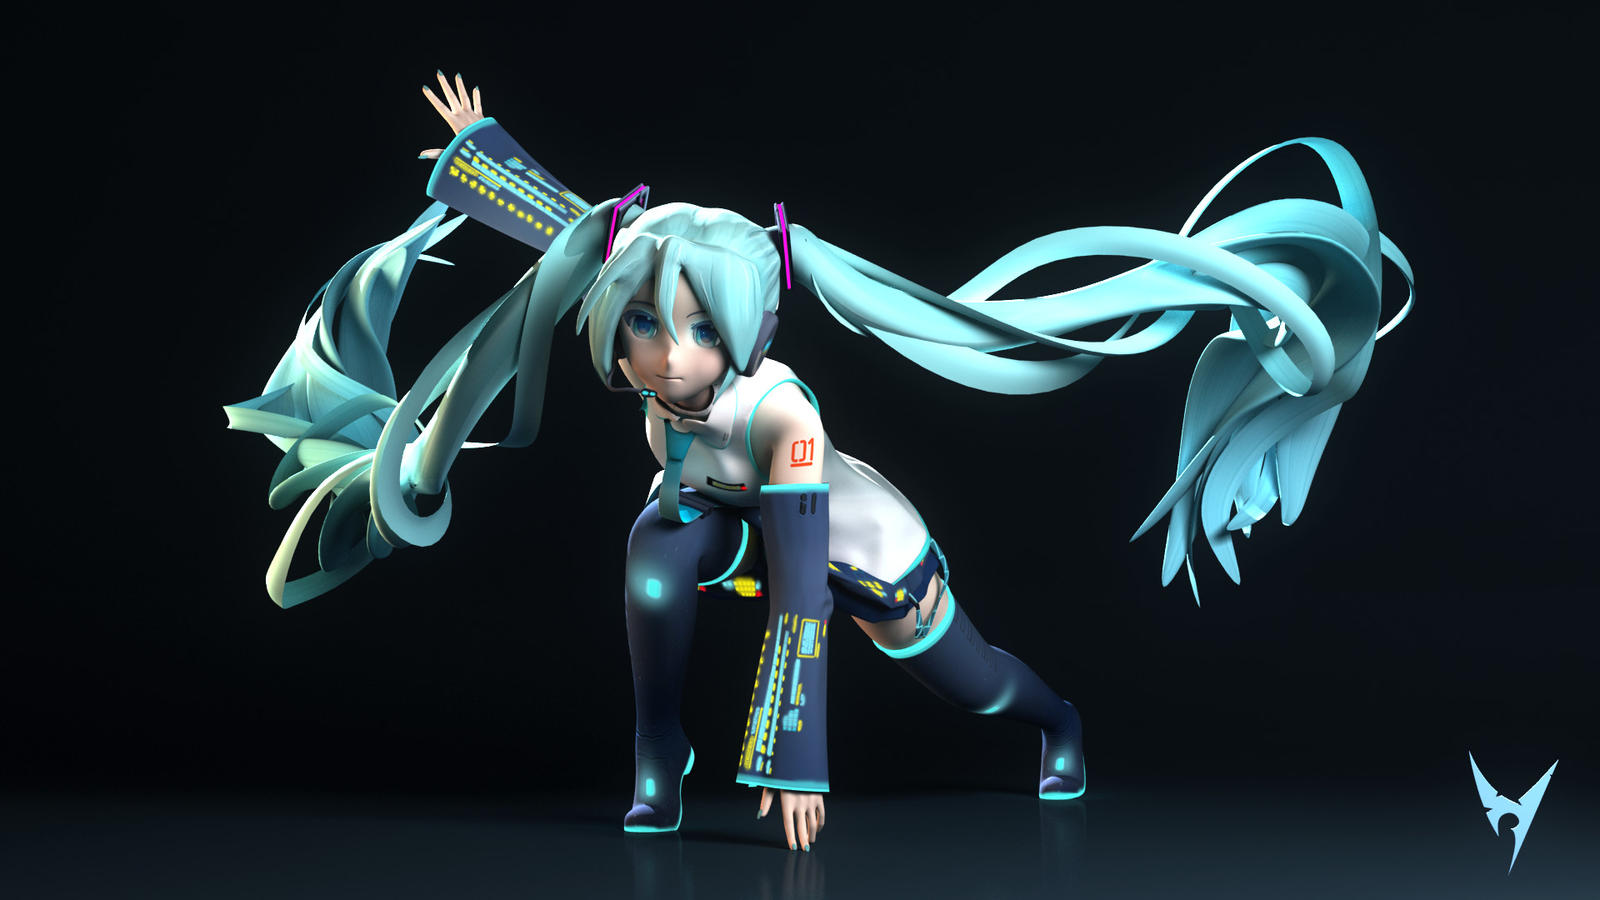 Hatsune Miku -- Pose#01 by Victim753